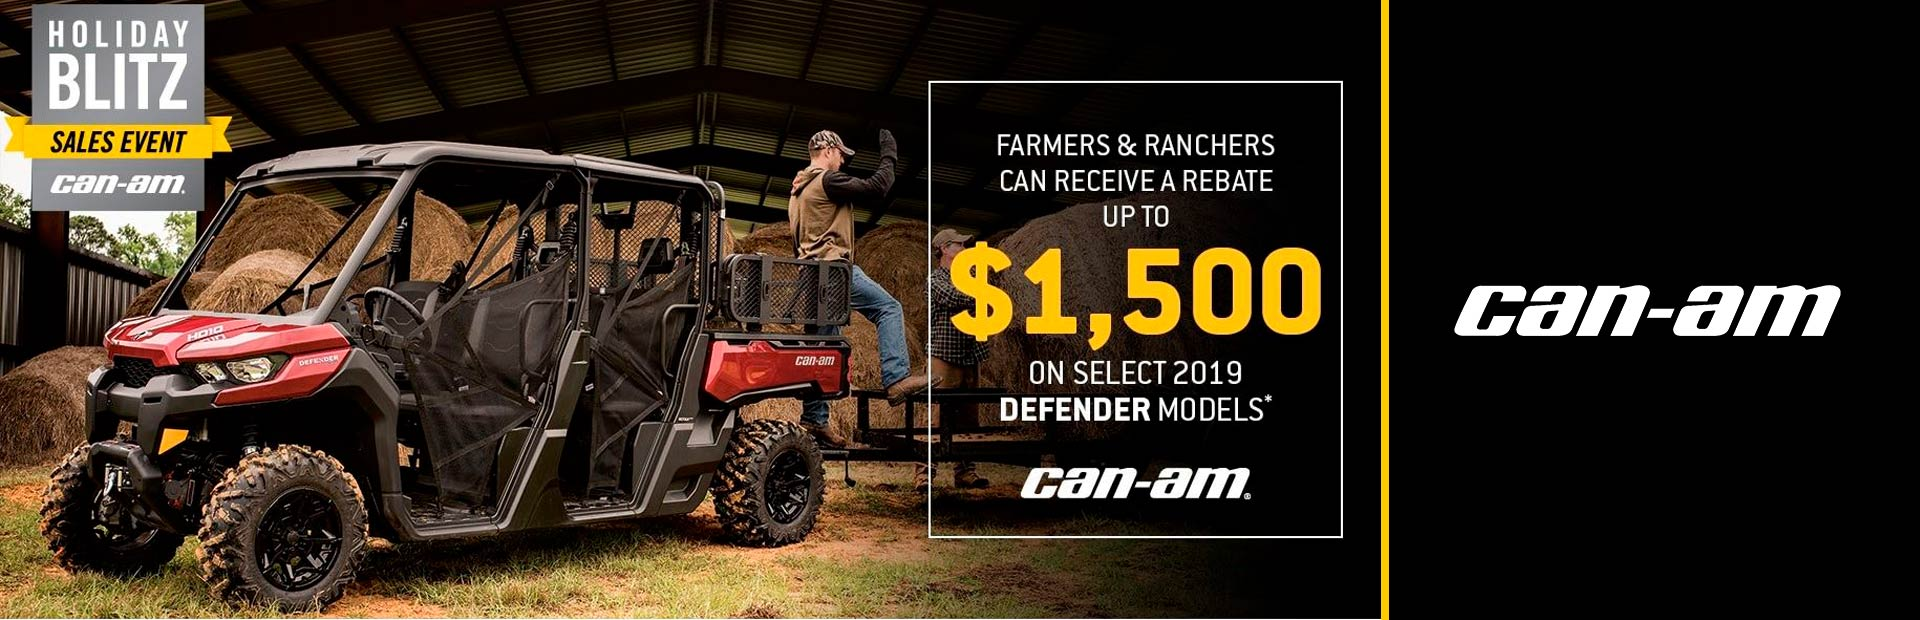 HOLIDAY BLITZ SALES EVENT - Farmers & Ranchers